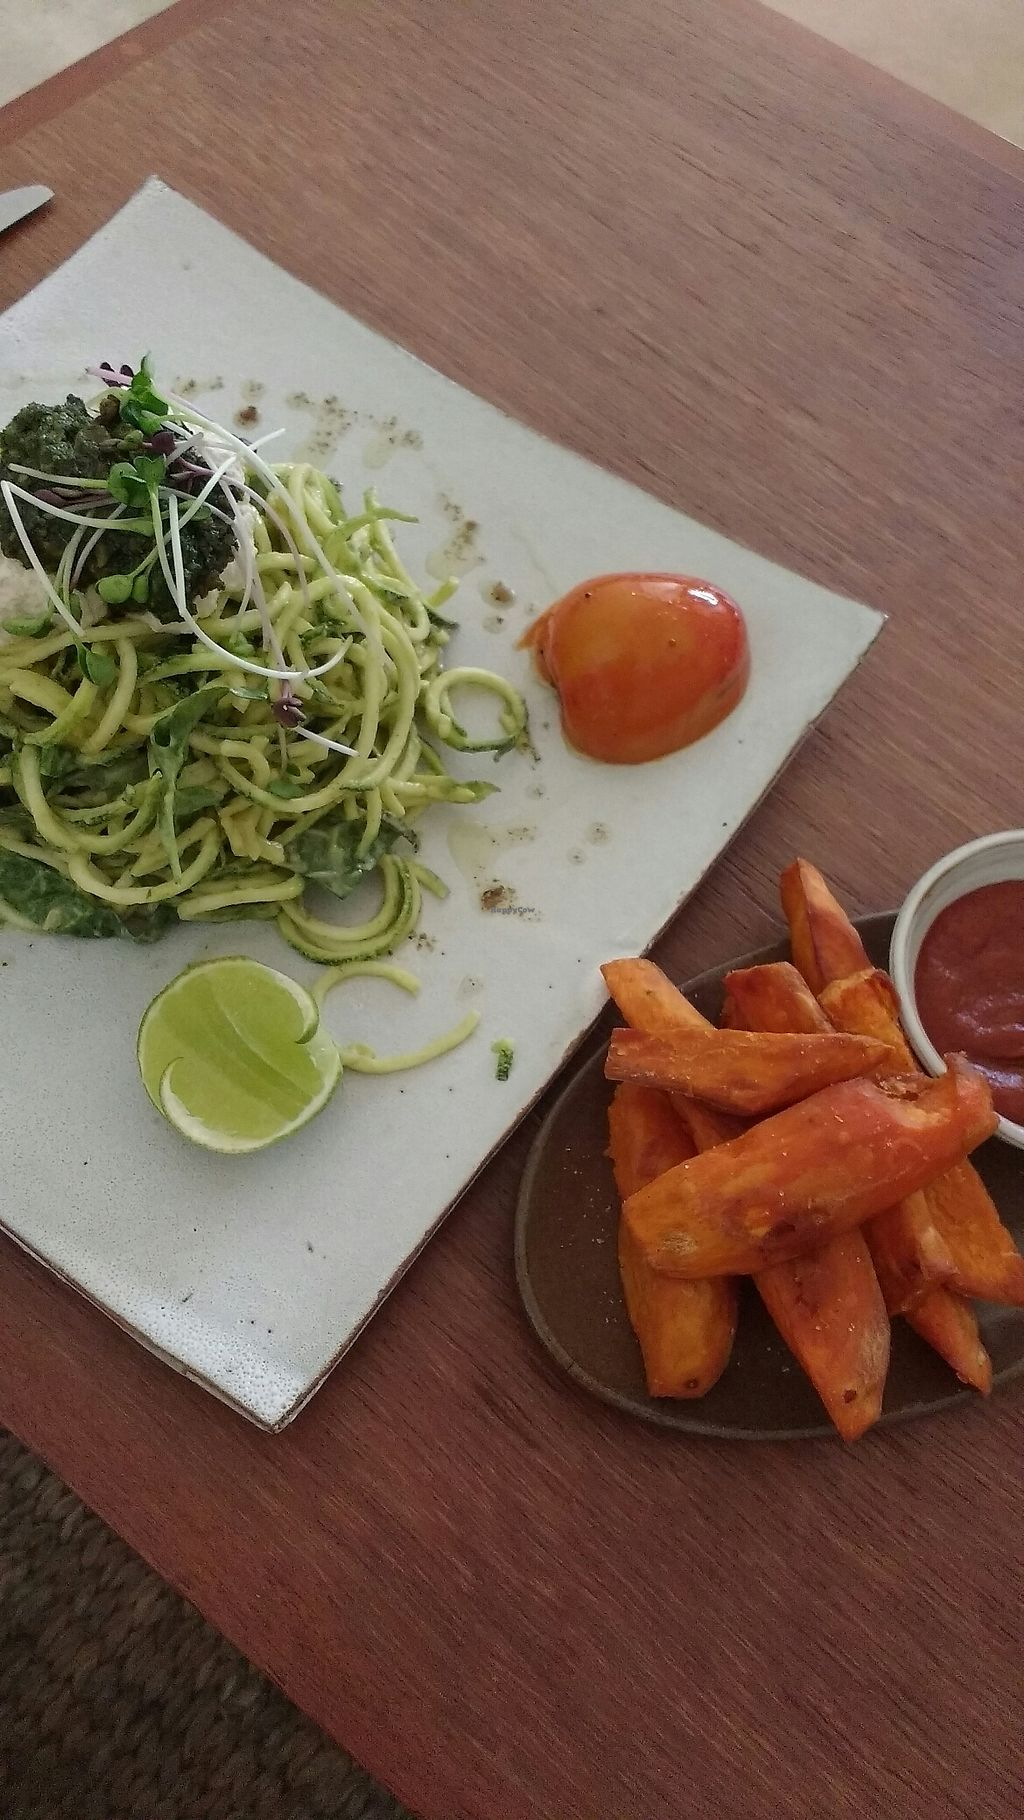 "Photo of Vibe Cafe  by <a href=""/members/profile/Anouk1121"">Anouk1121</a> <br/>Zucchini noodles and fries <br/> December 18, 2017  - <a href='/contact/abuse/image/90274/336914'>Report</a>"